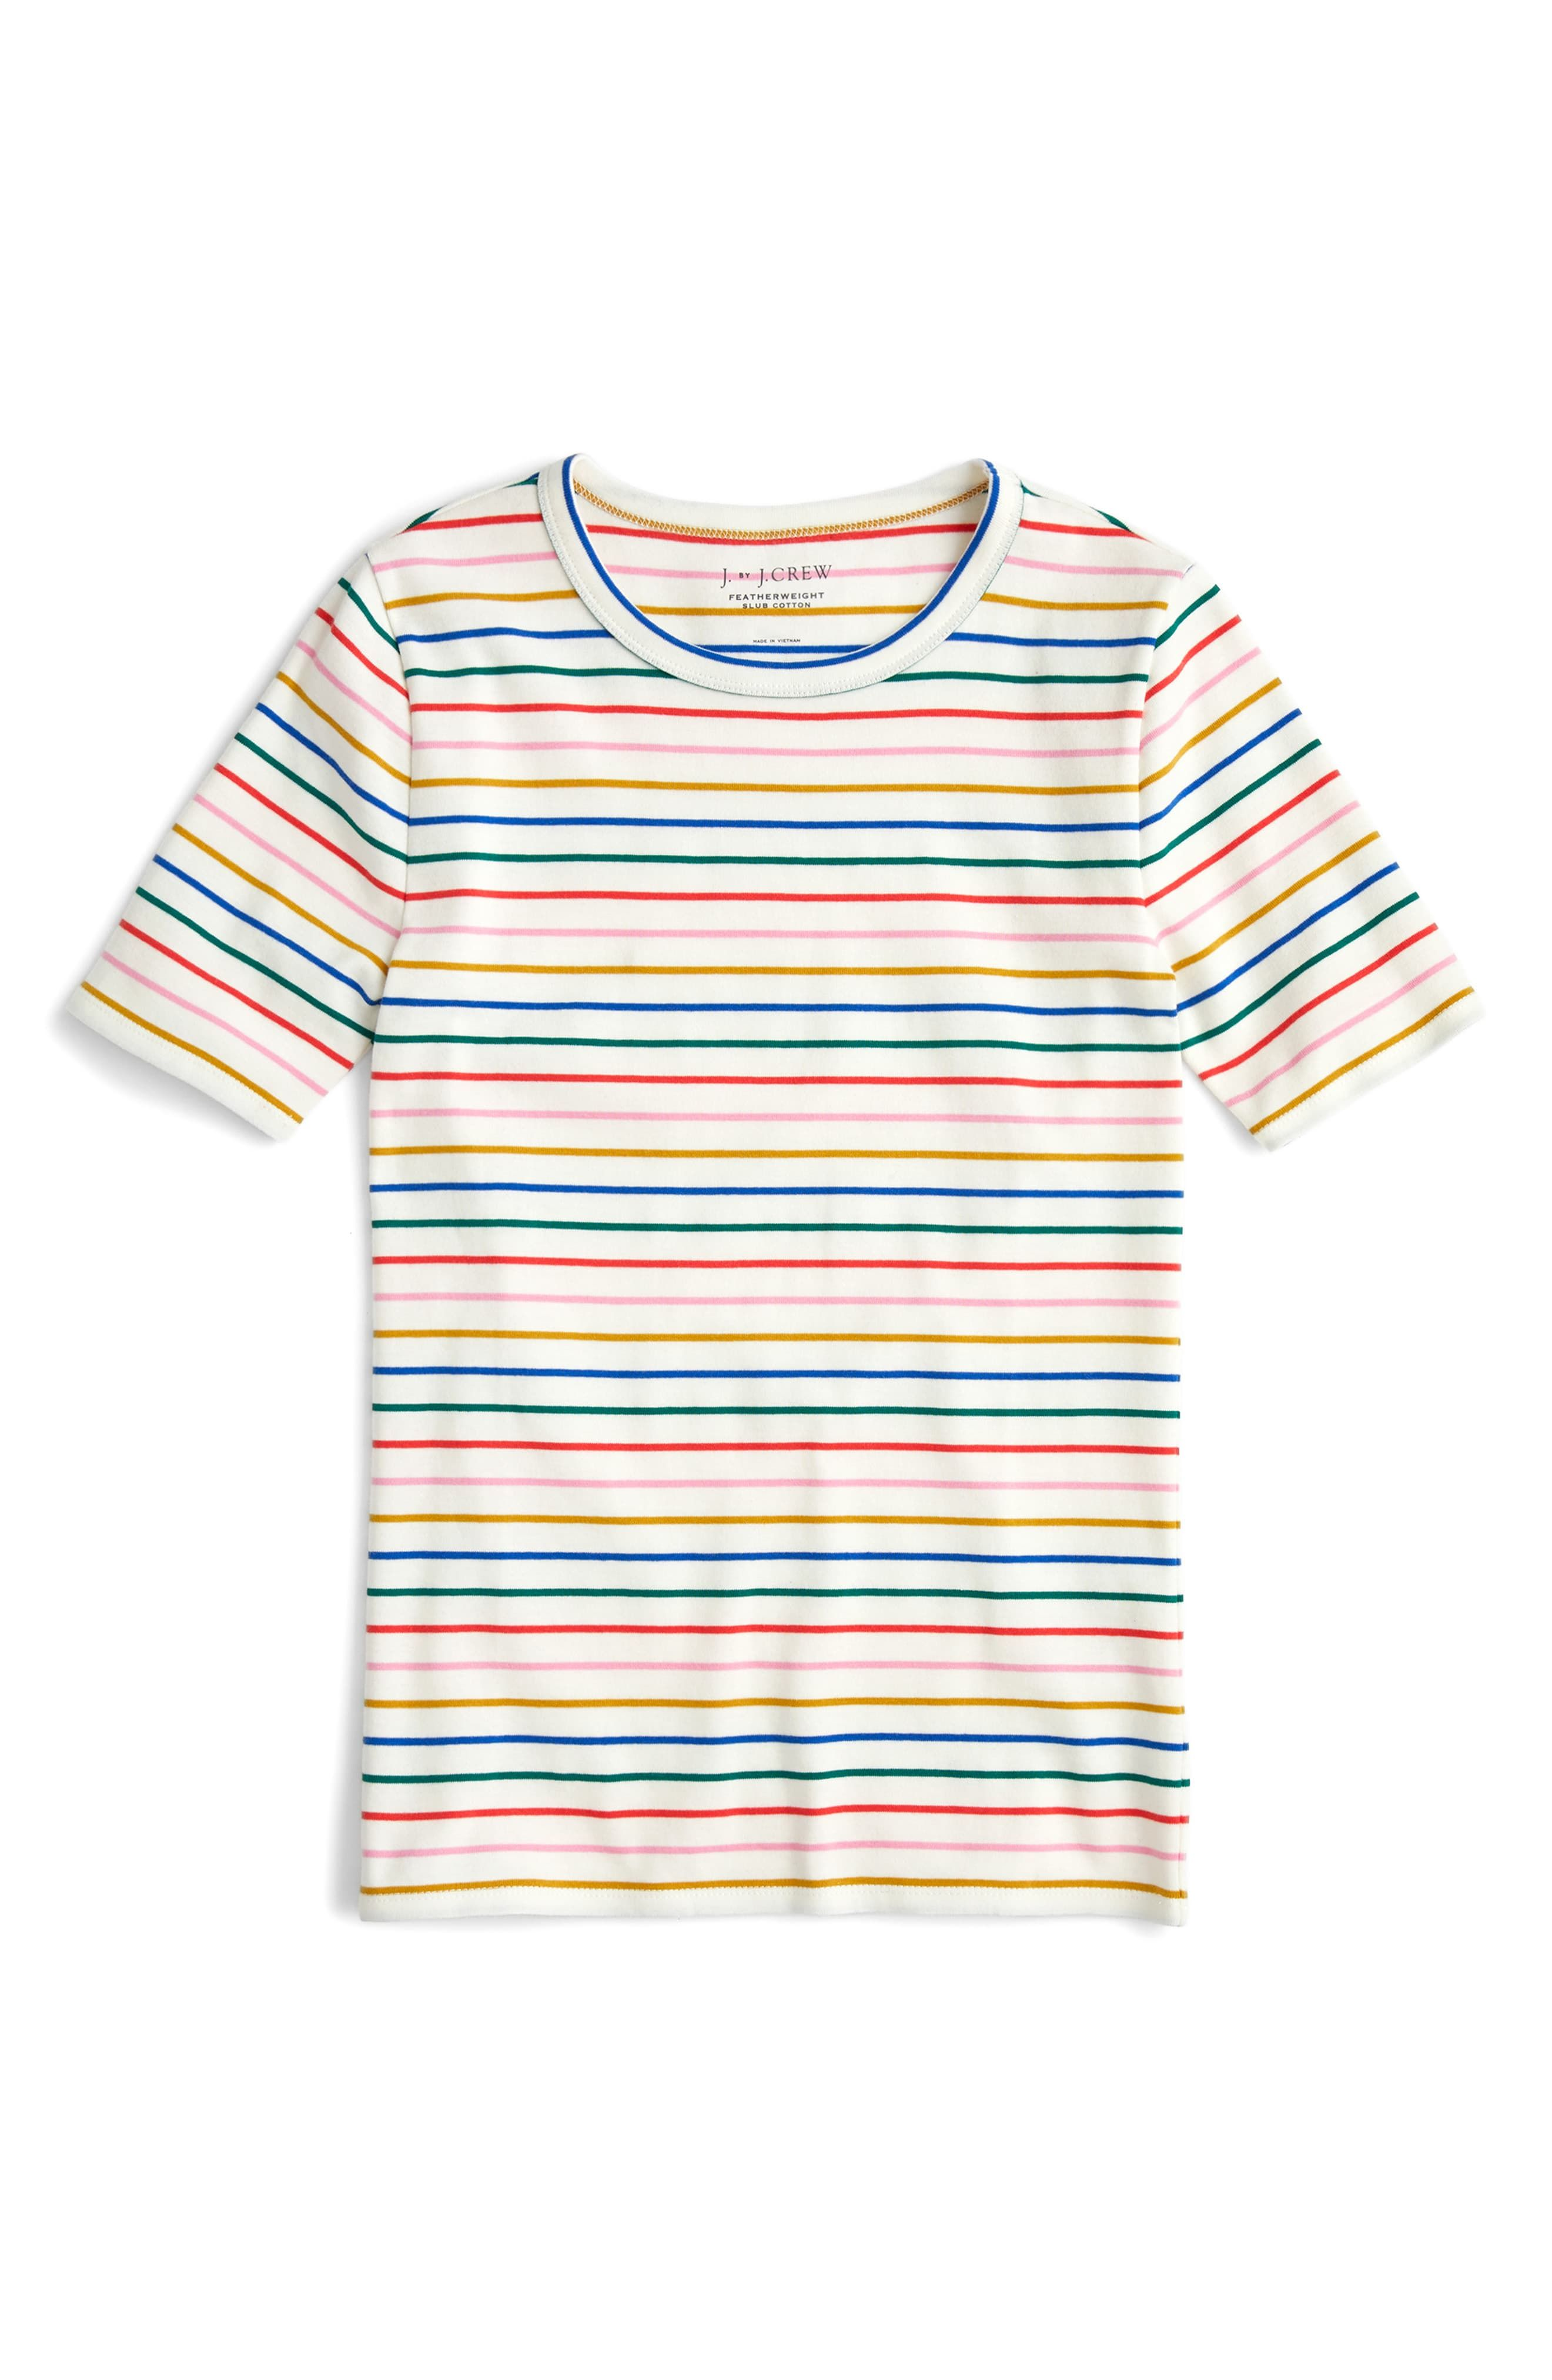 J Crew Perfect Fit Tee : perfect, Women's, J.crew, Perfect, Small, Tees,, Women